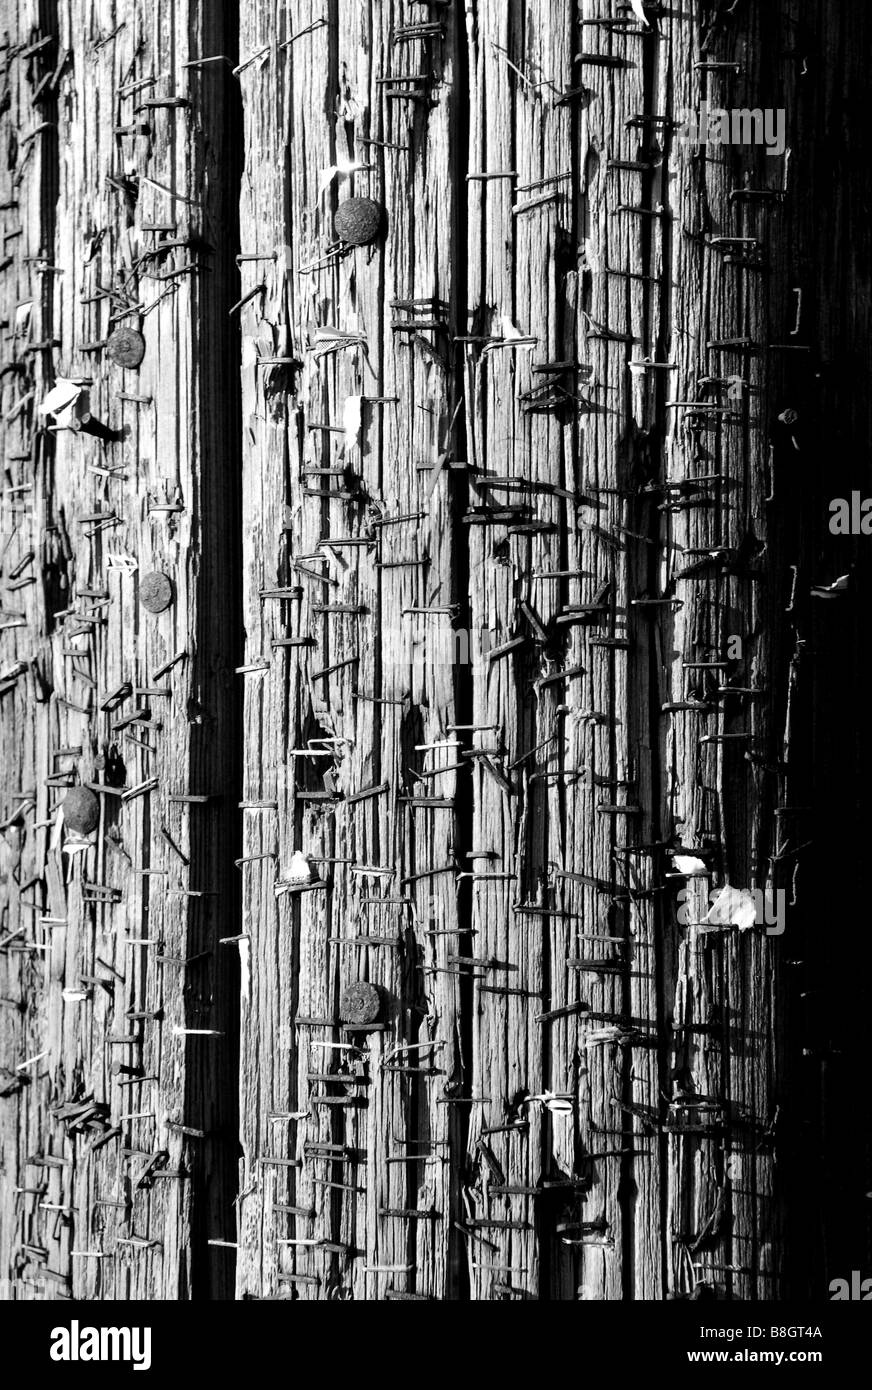 Remenants of centuries of advertisements on a telephone pole. - Stock Image